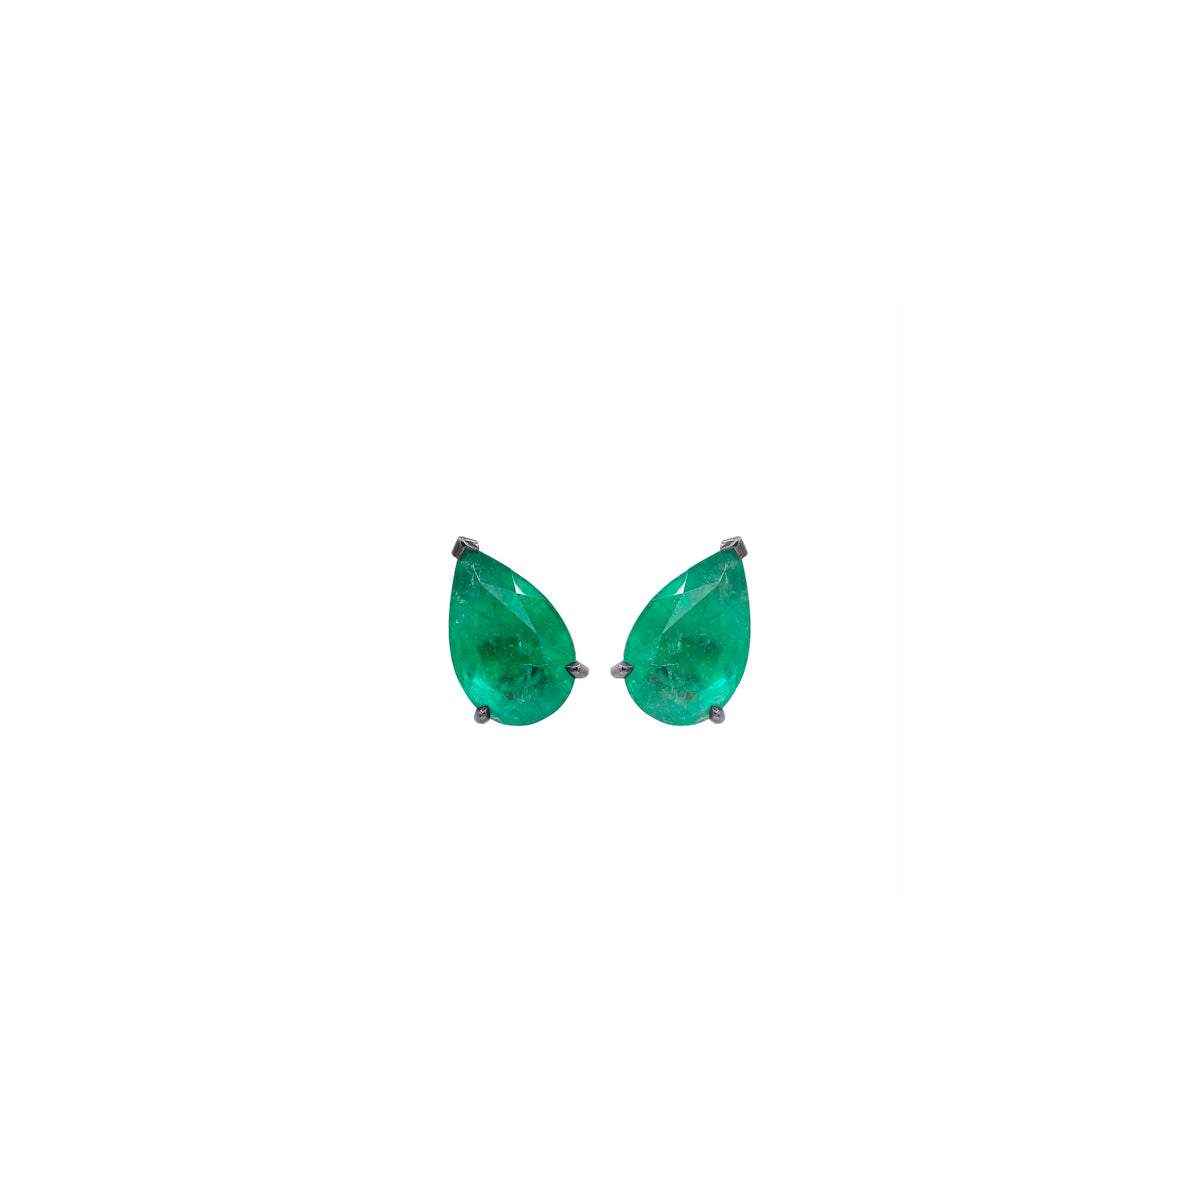 Pear Emerald Studs (Small)